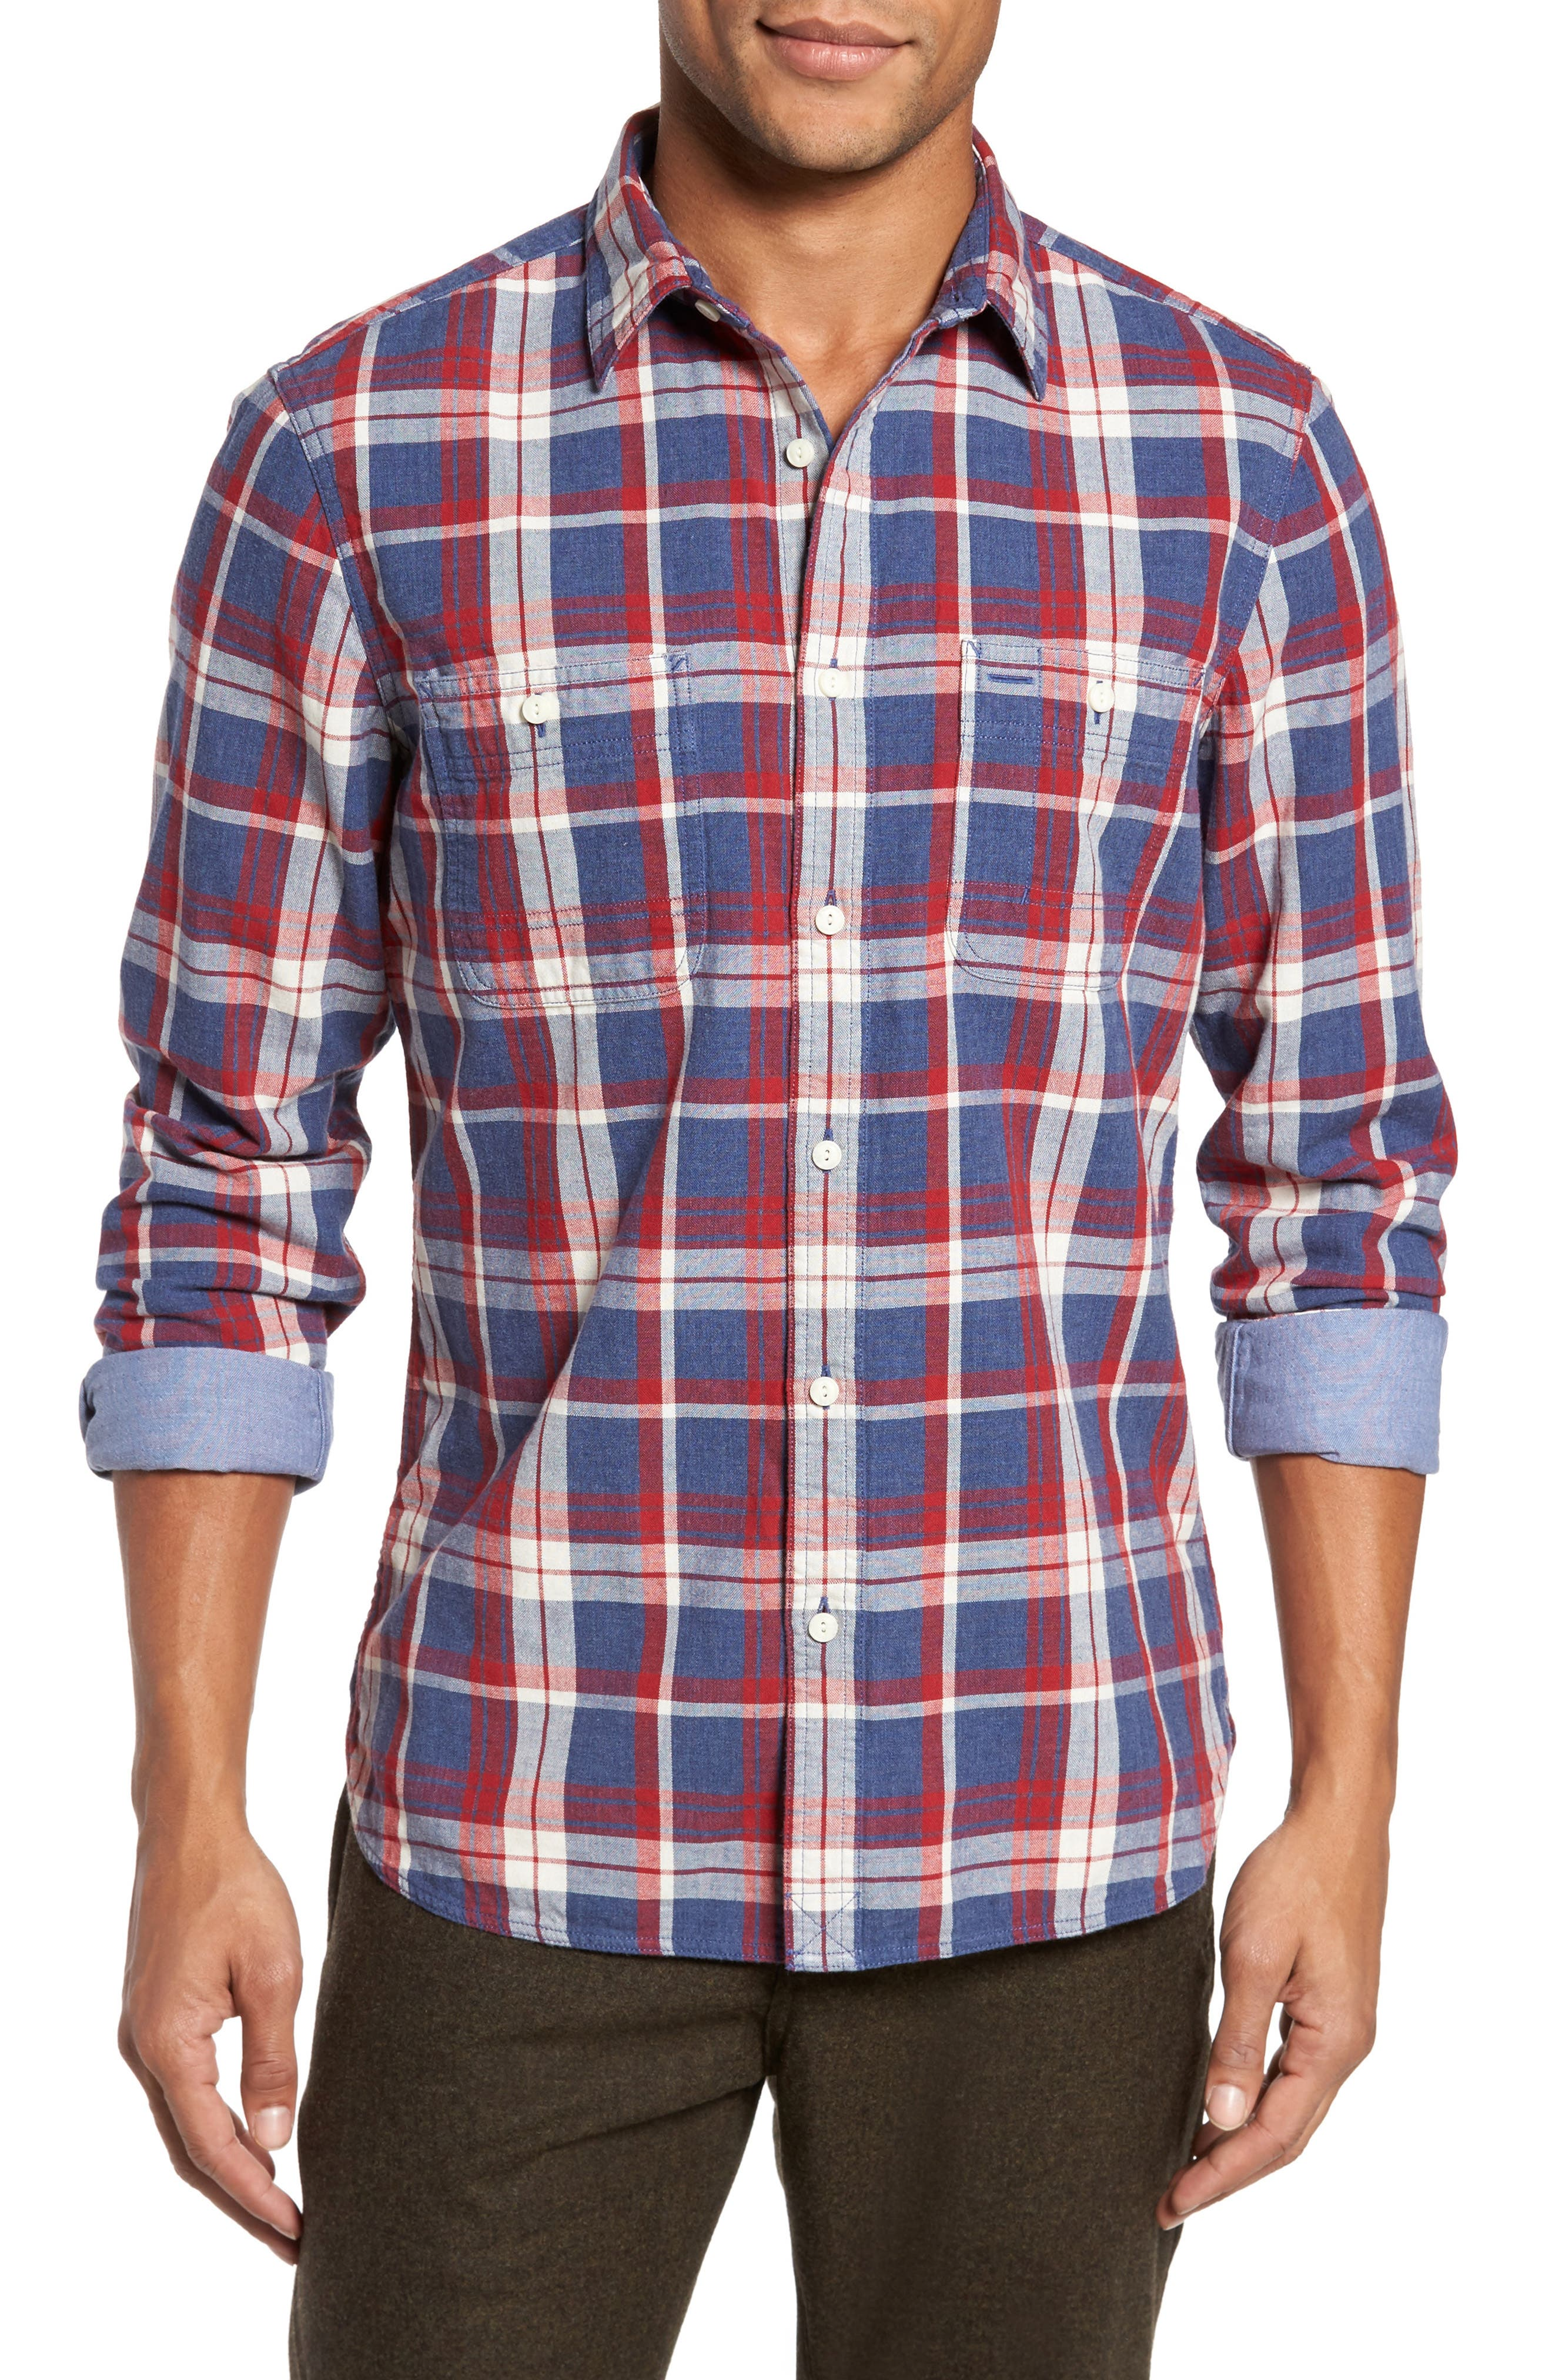 Trim Fit Workwear Duofold Plaid Sport Shirt,                             Main thumbnail 1, color,                             Blue Ensign Red Plaid Duofold